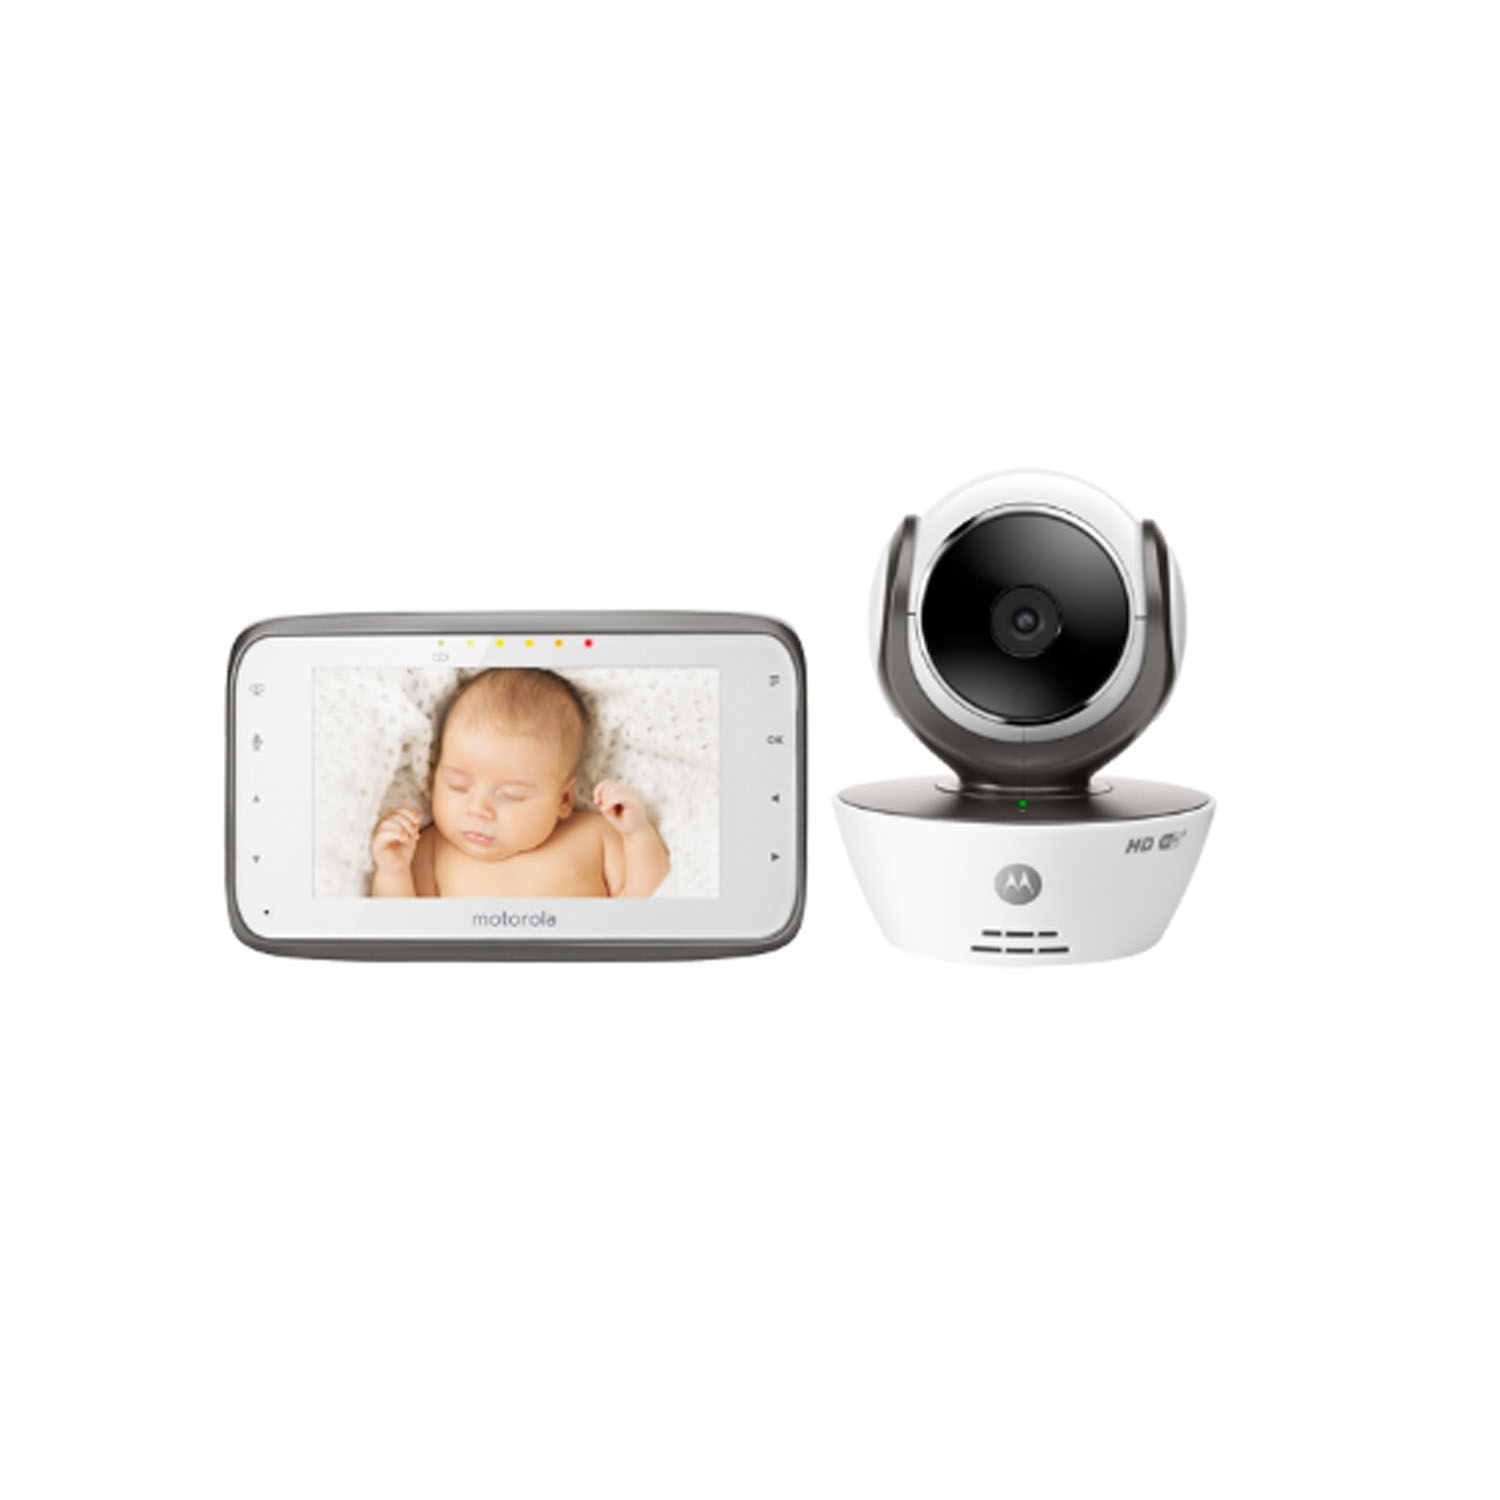 motorola mbp854 connect digital video baby monitor white grade c ebay. Black Bedroom Furniture Sets. Home Design Ideas